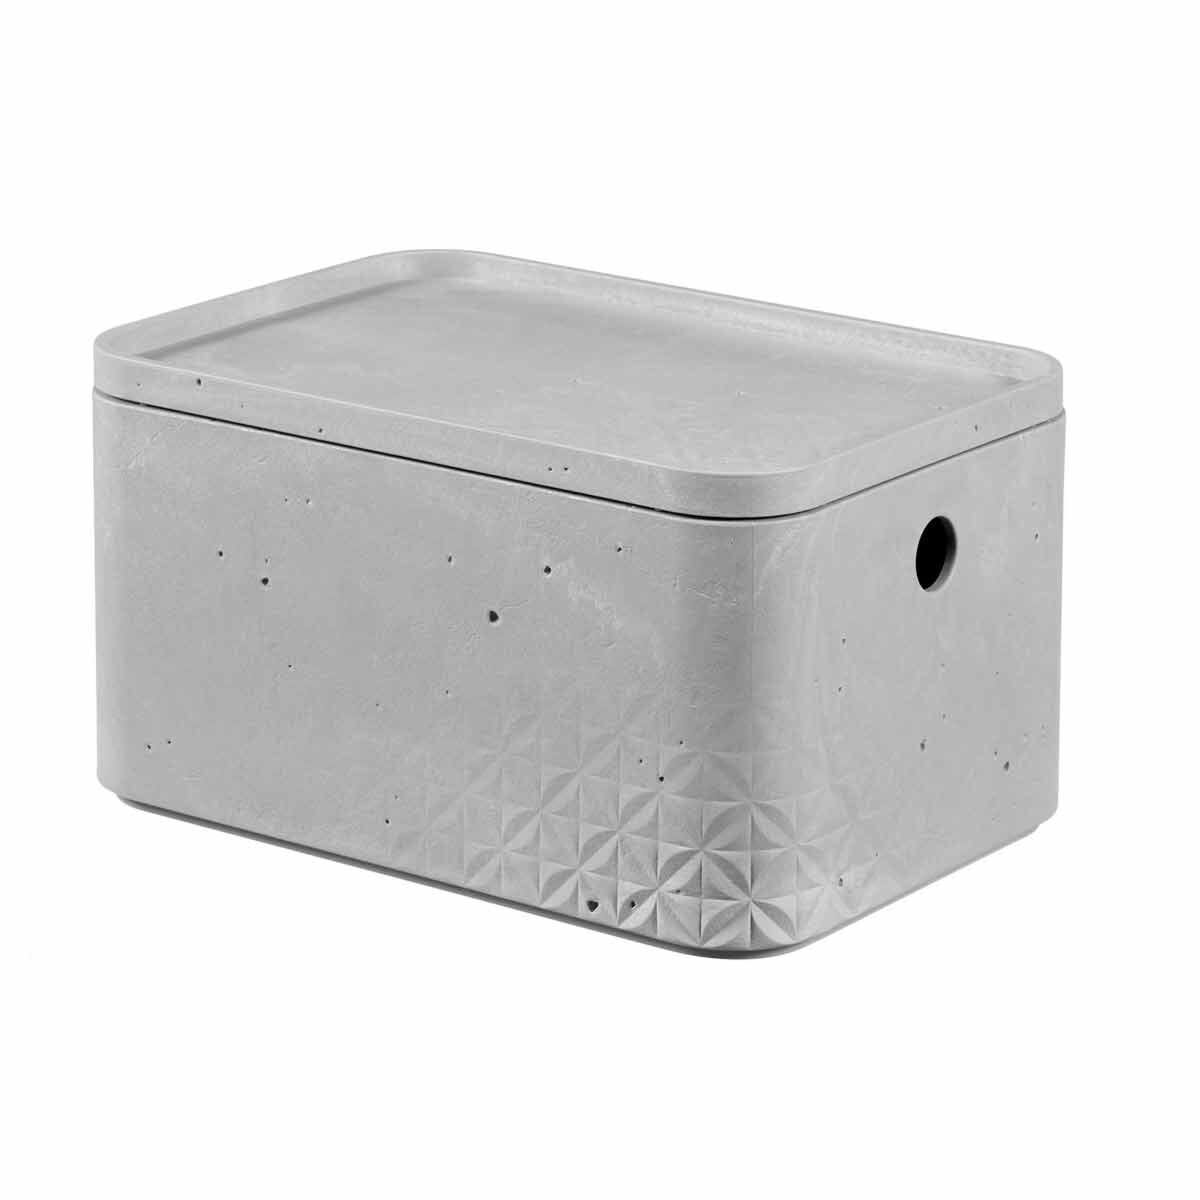 Curver Beton Storage Box with Lid 4 Litres Pack of 6